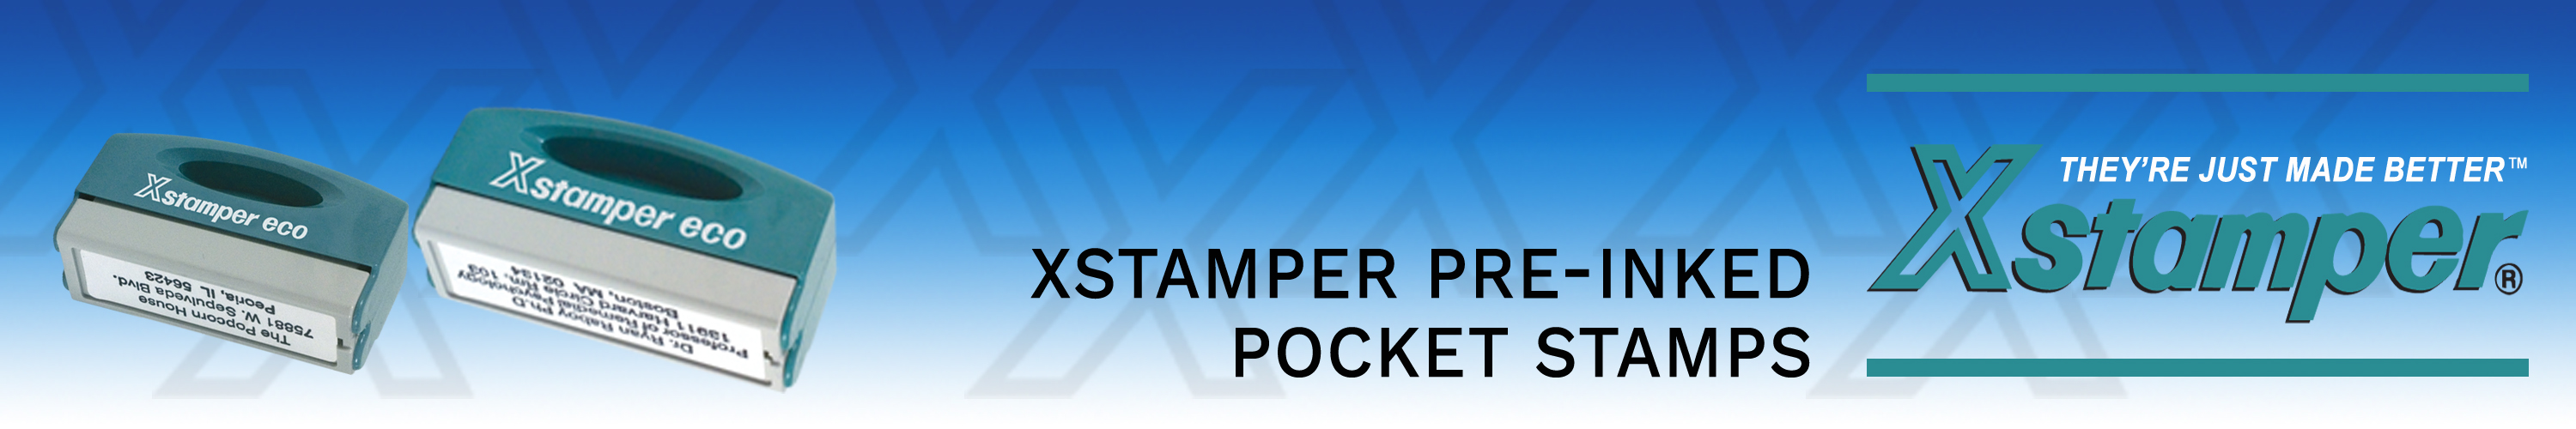 Xstamper Pocket Stamps customized for you.  Made and shipped daily. No sales tax ever.